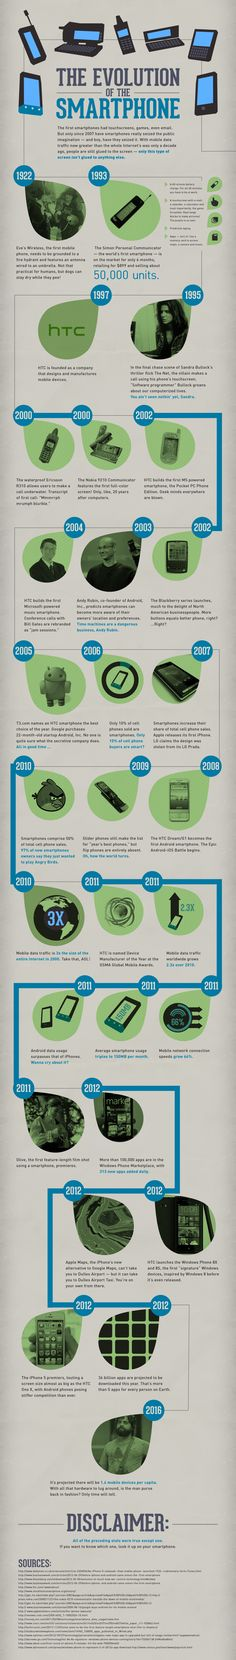 The Evolution Of The Smartphone [Infographic]